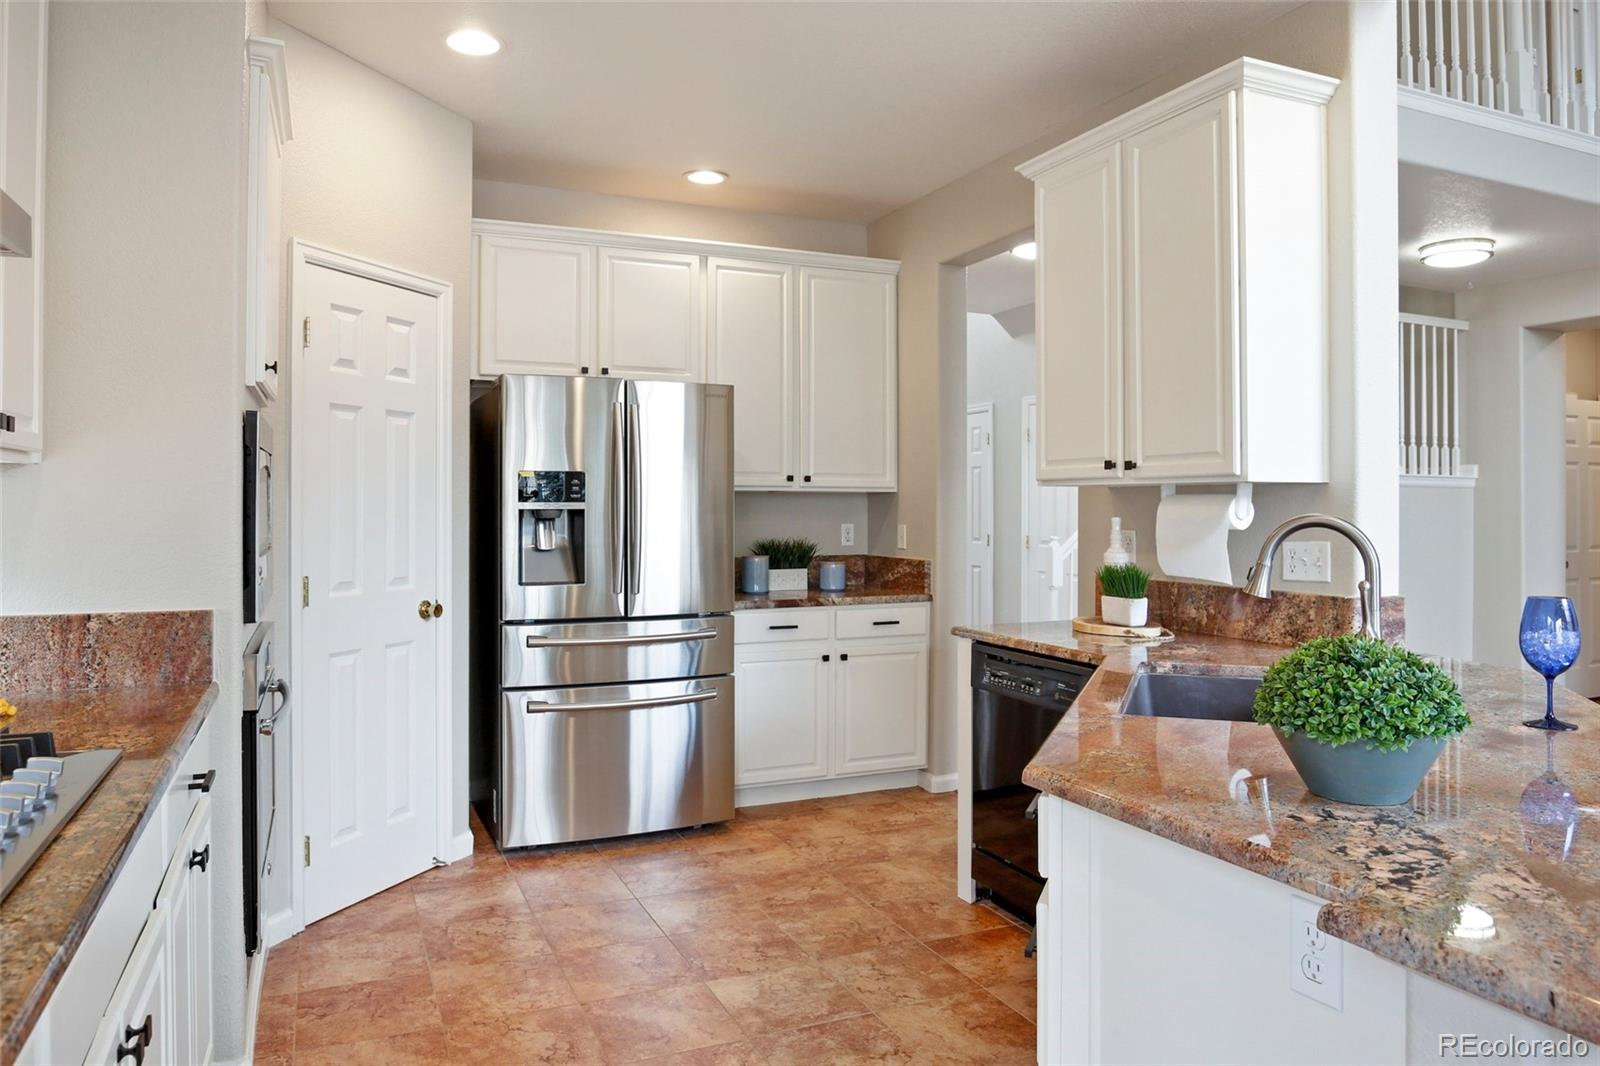 MLS# 7661027 - 9 - 4865 W 116th Court, Westminster, CO 80031